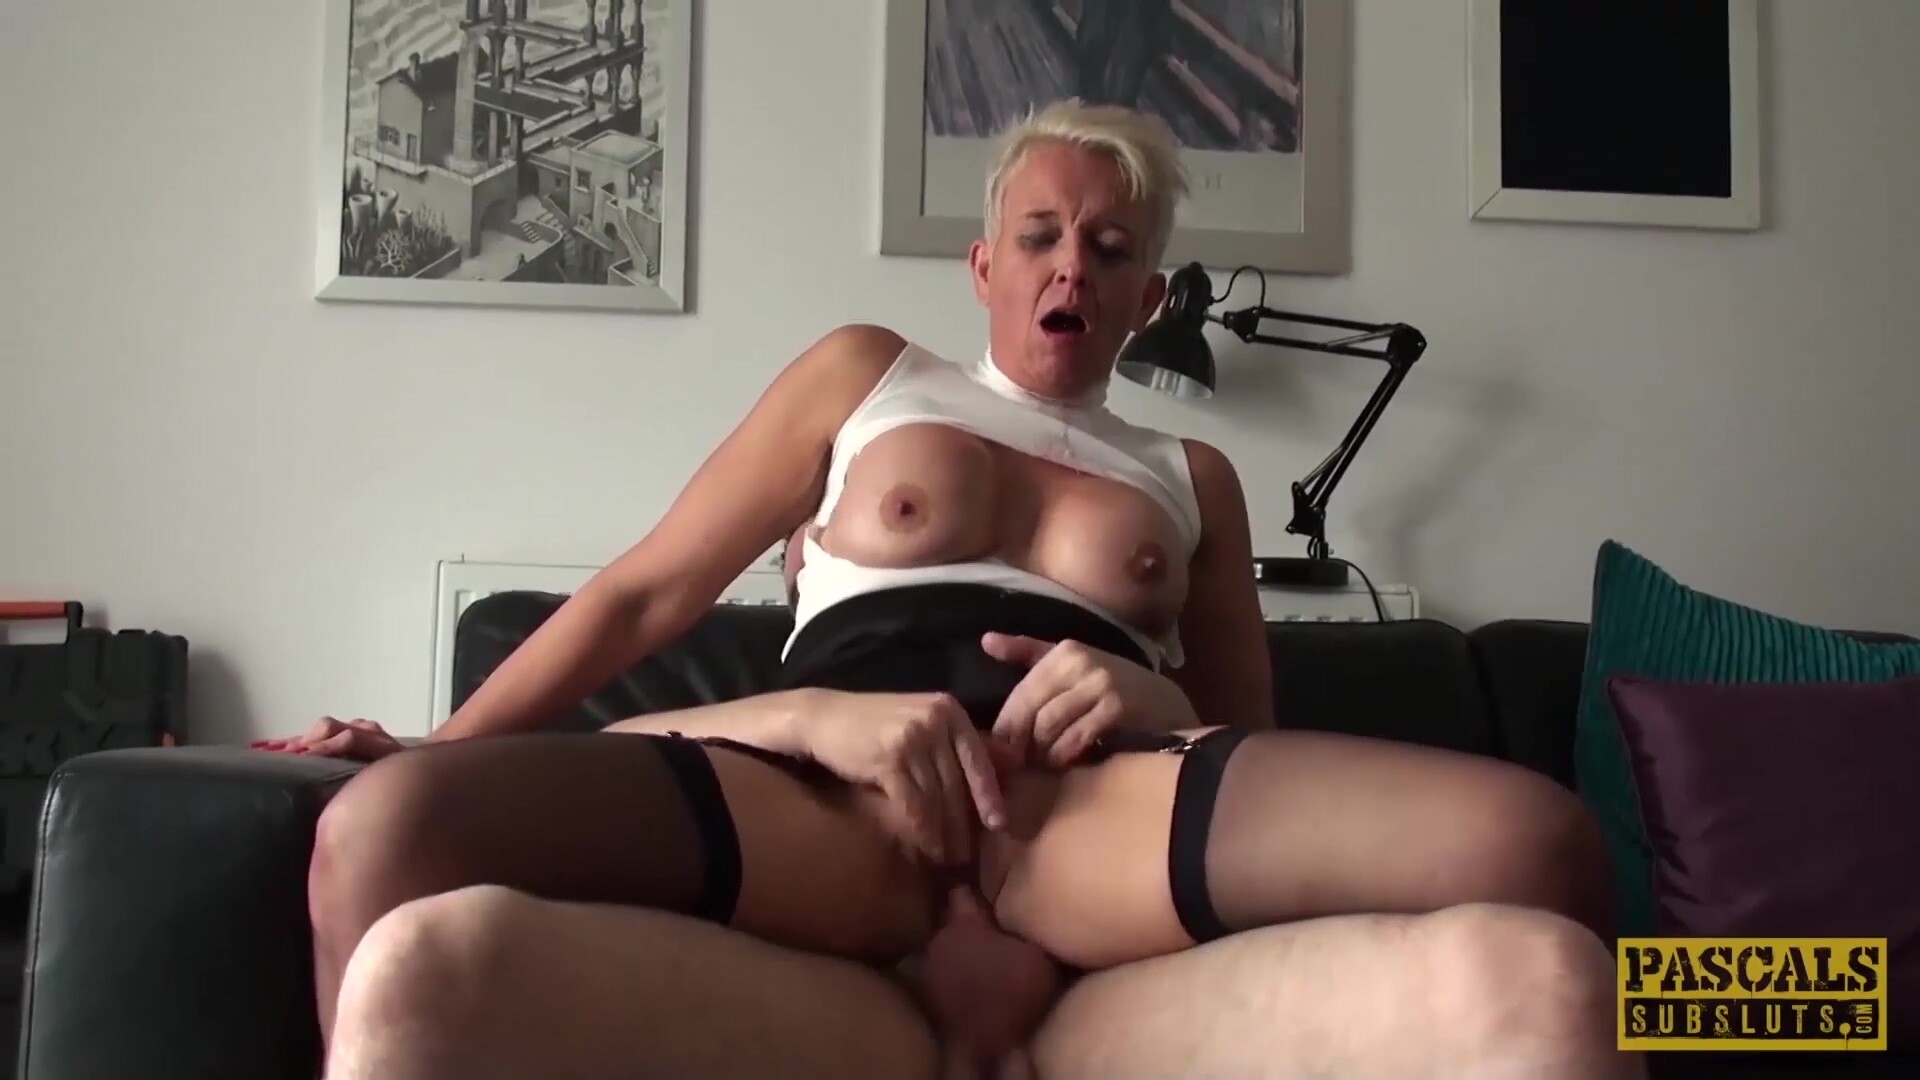 Video 1360882104: bdsm humiliation, fetish humiliation, cock humiliation, tits humiliation, big cock bdsm, mature humiliation, submitted, humiliated blonde, swallowing master, swallow older, swallows white